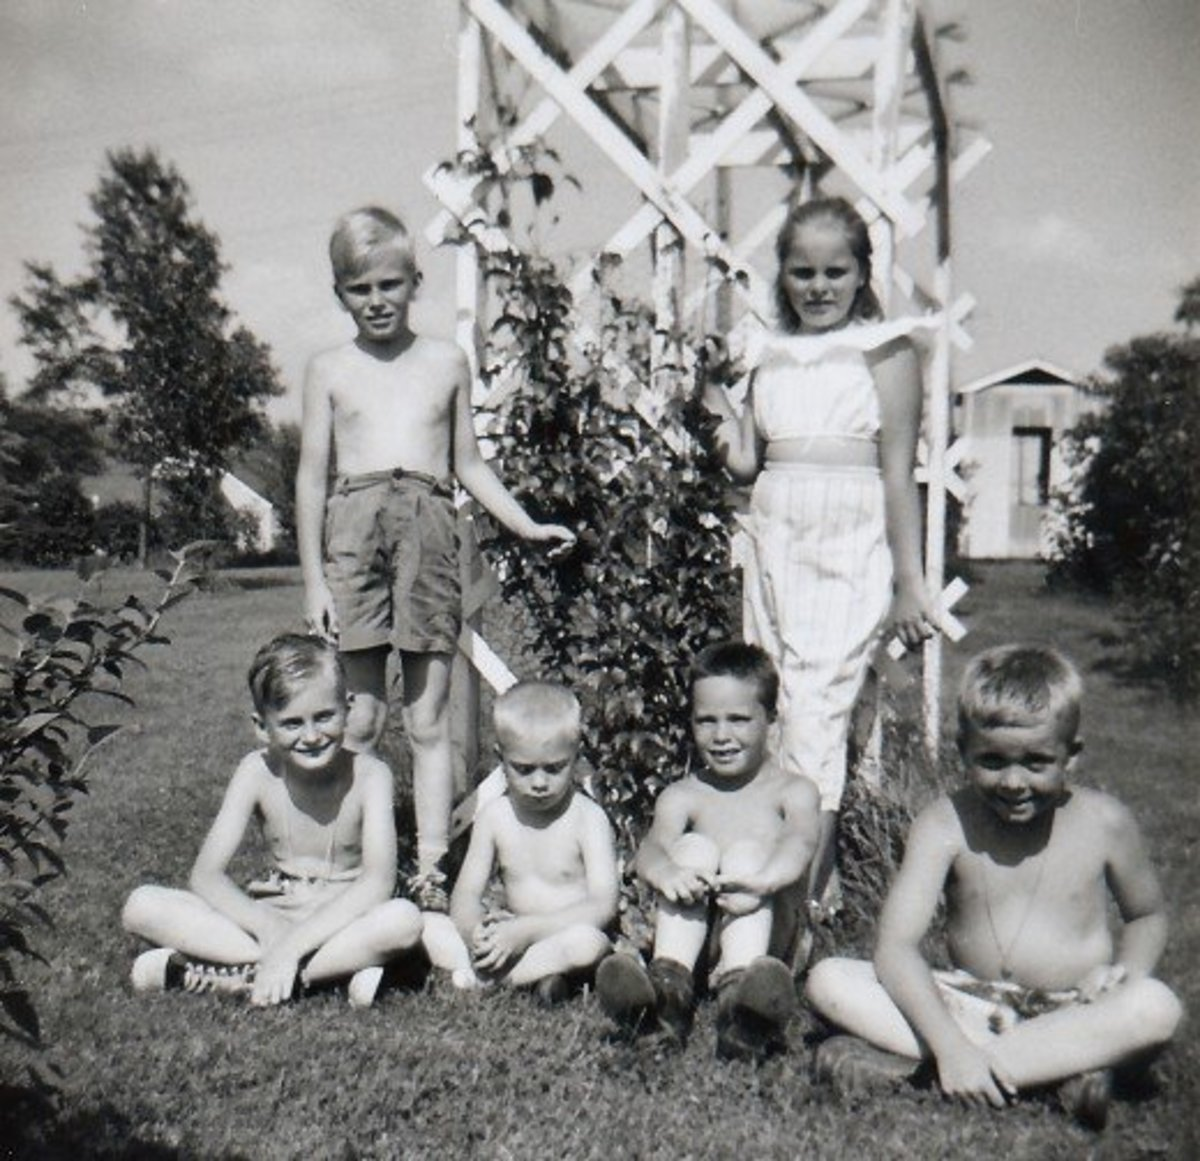 My 3 cousins and my 2 brothers both of whom are seated below me on the right.